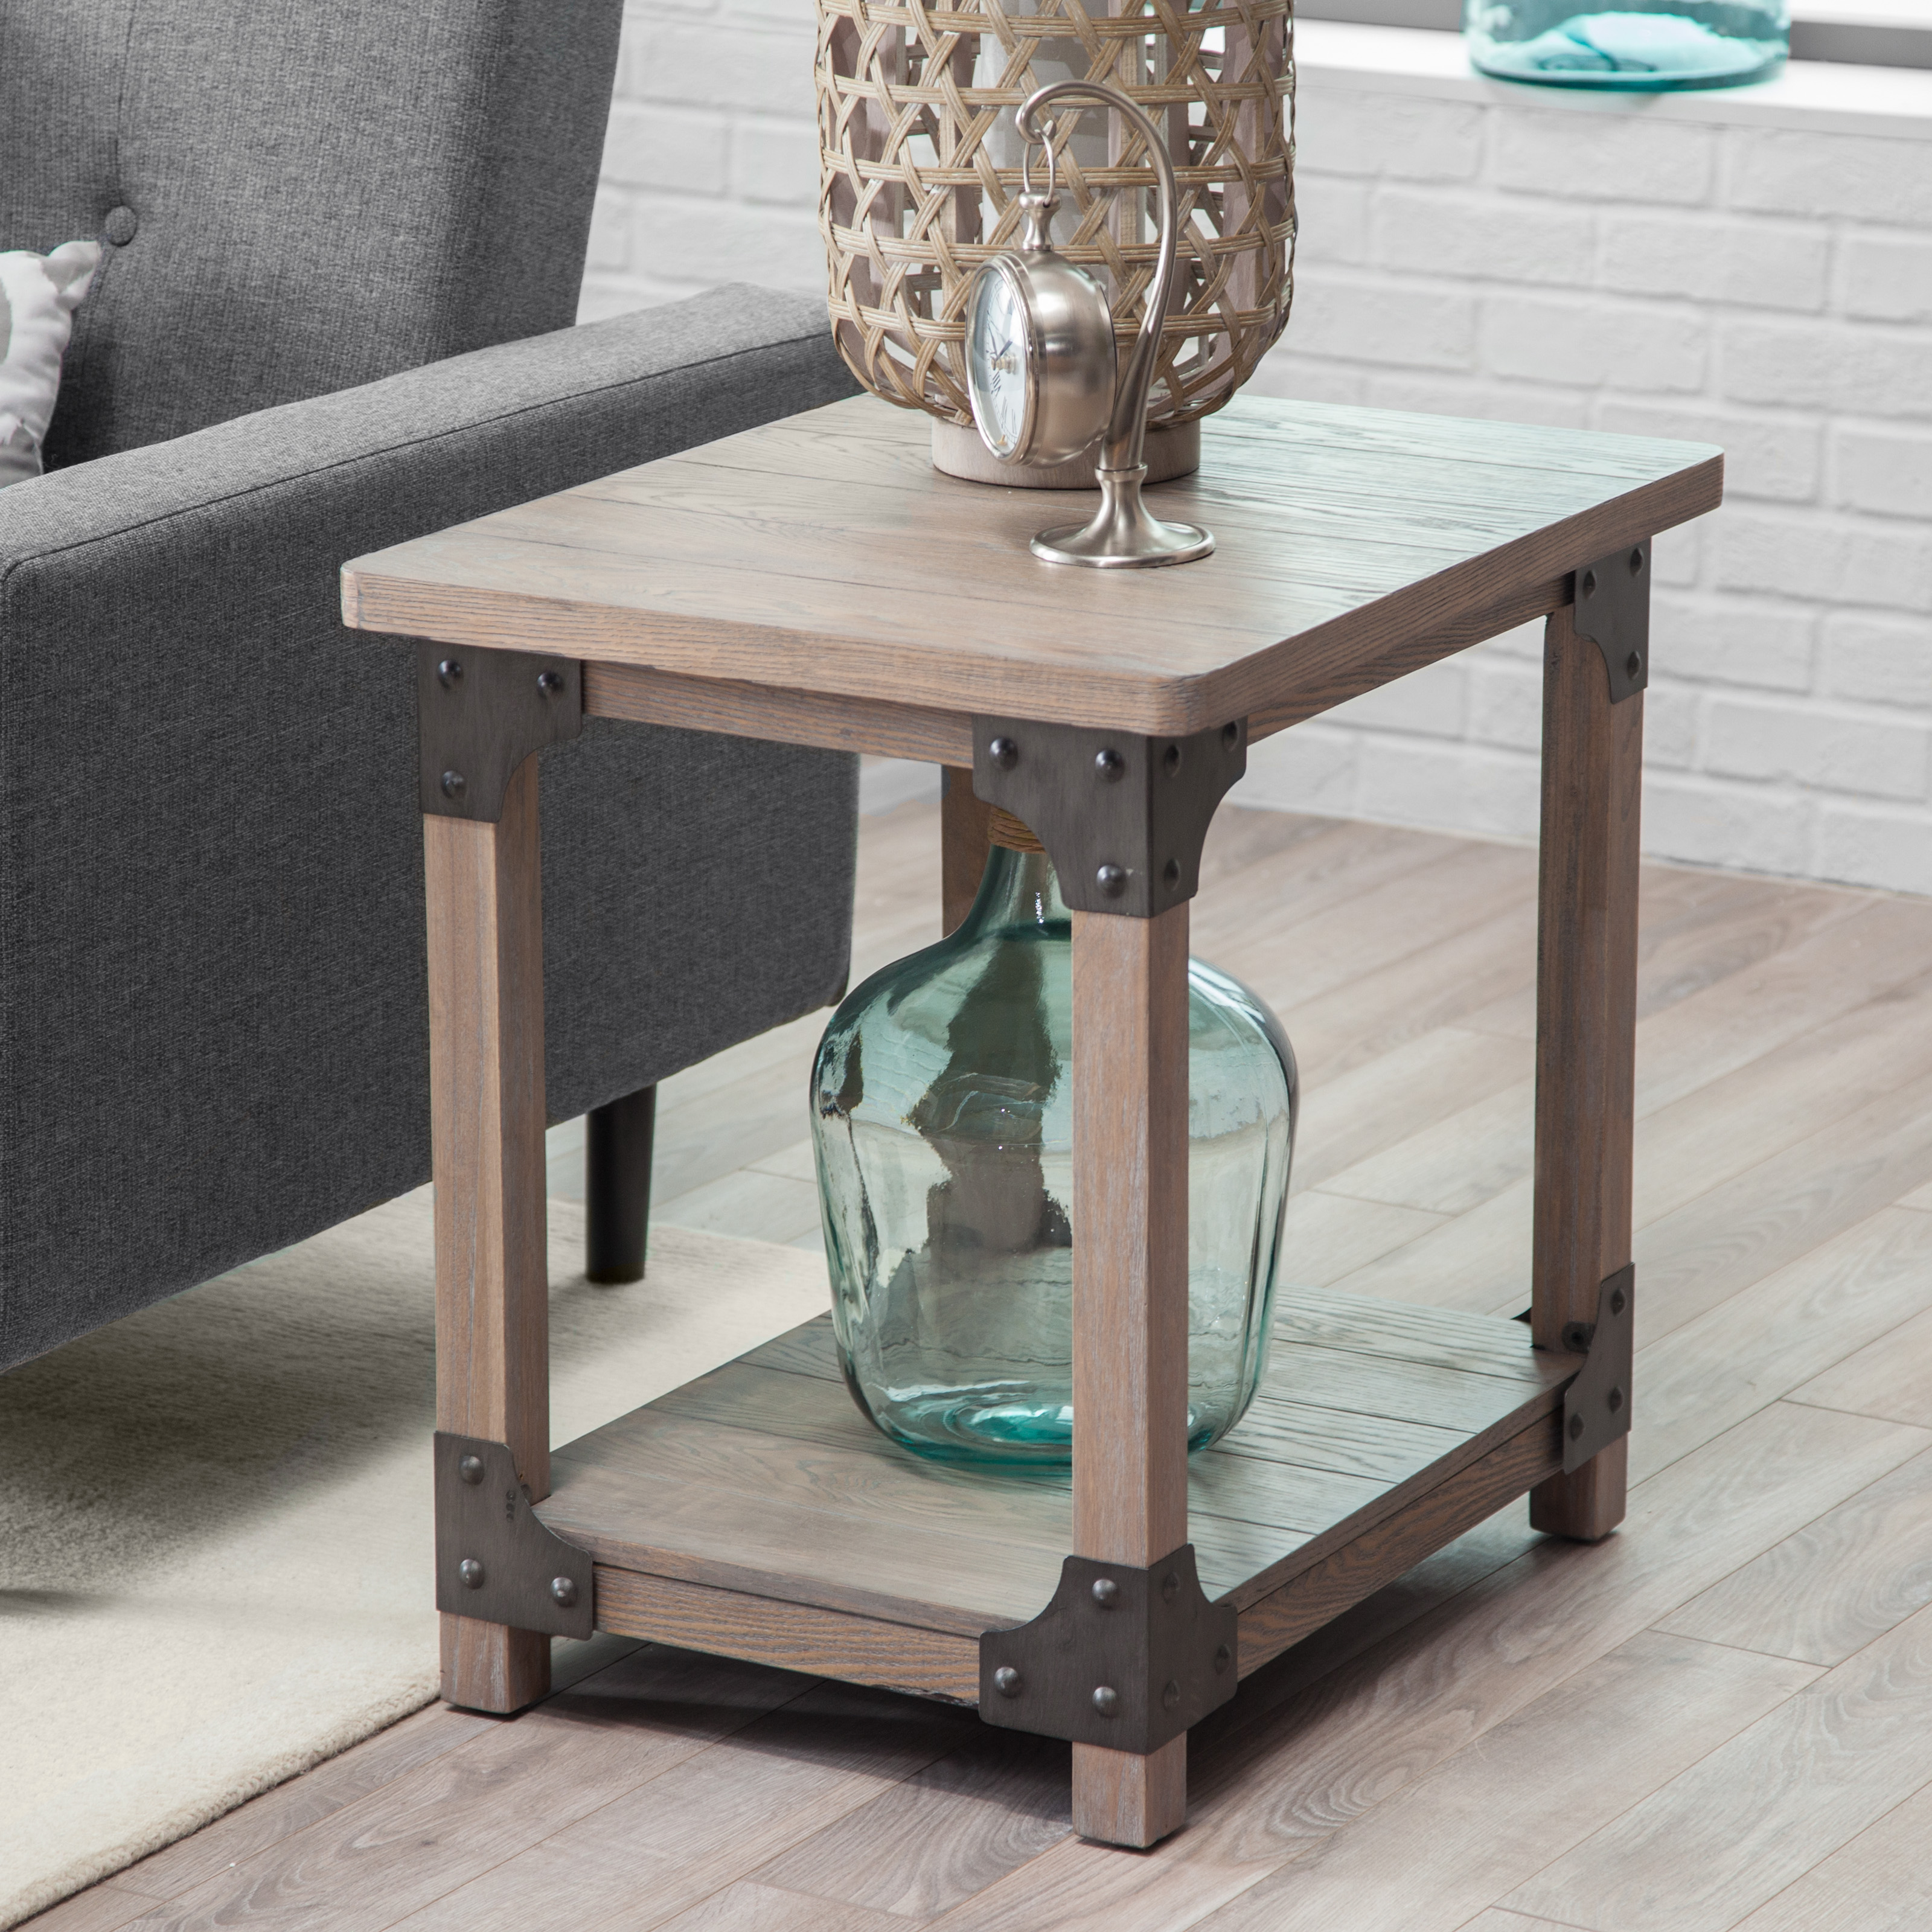 Belham Living Edison Reclaimed Wood Nesting Tables